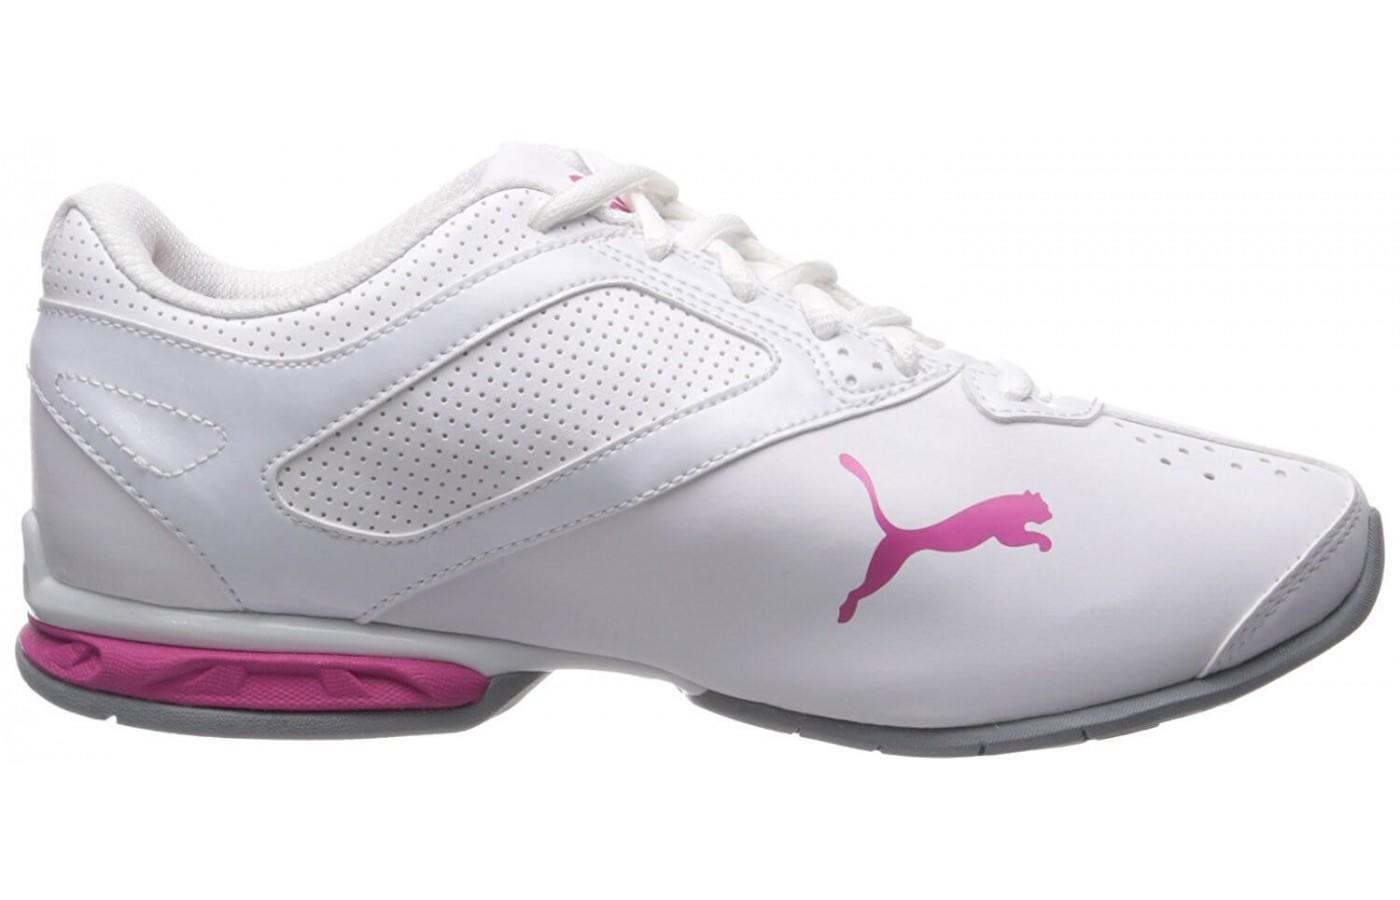 here is a look at the women's Tazon 6 in white